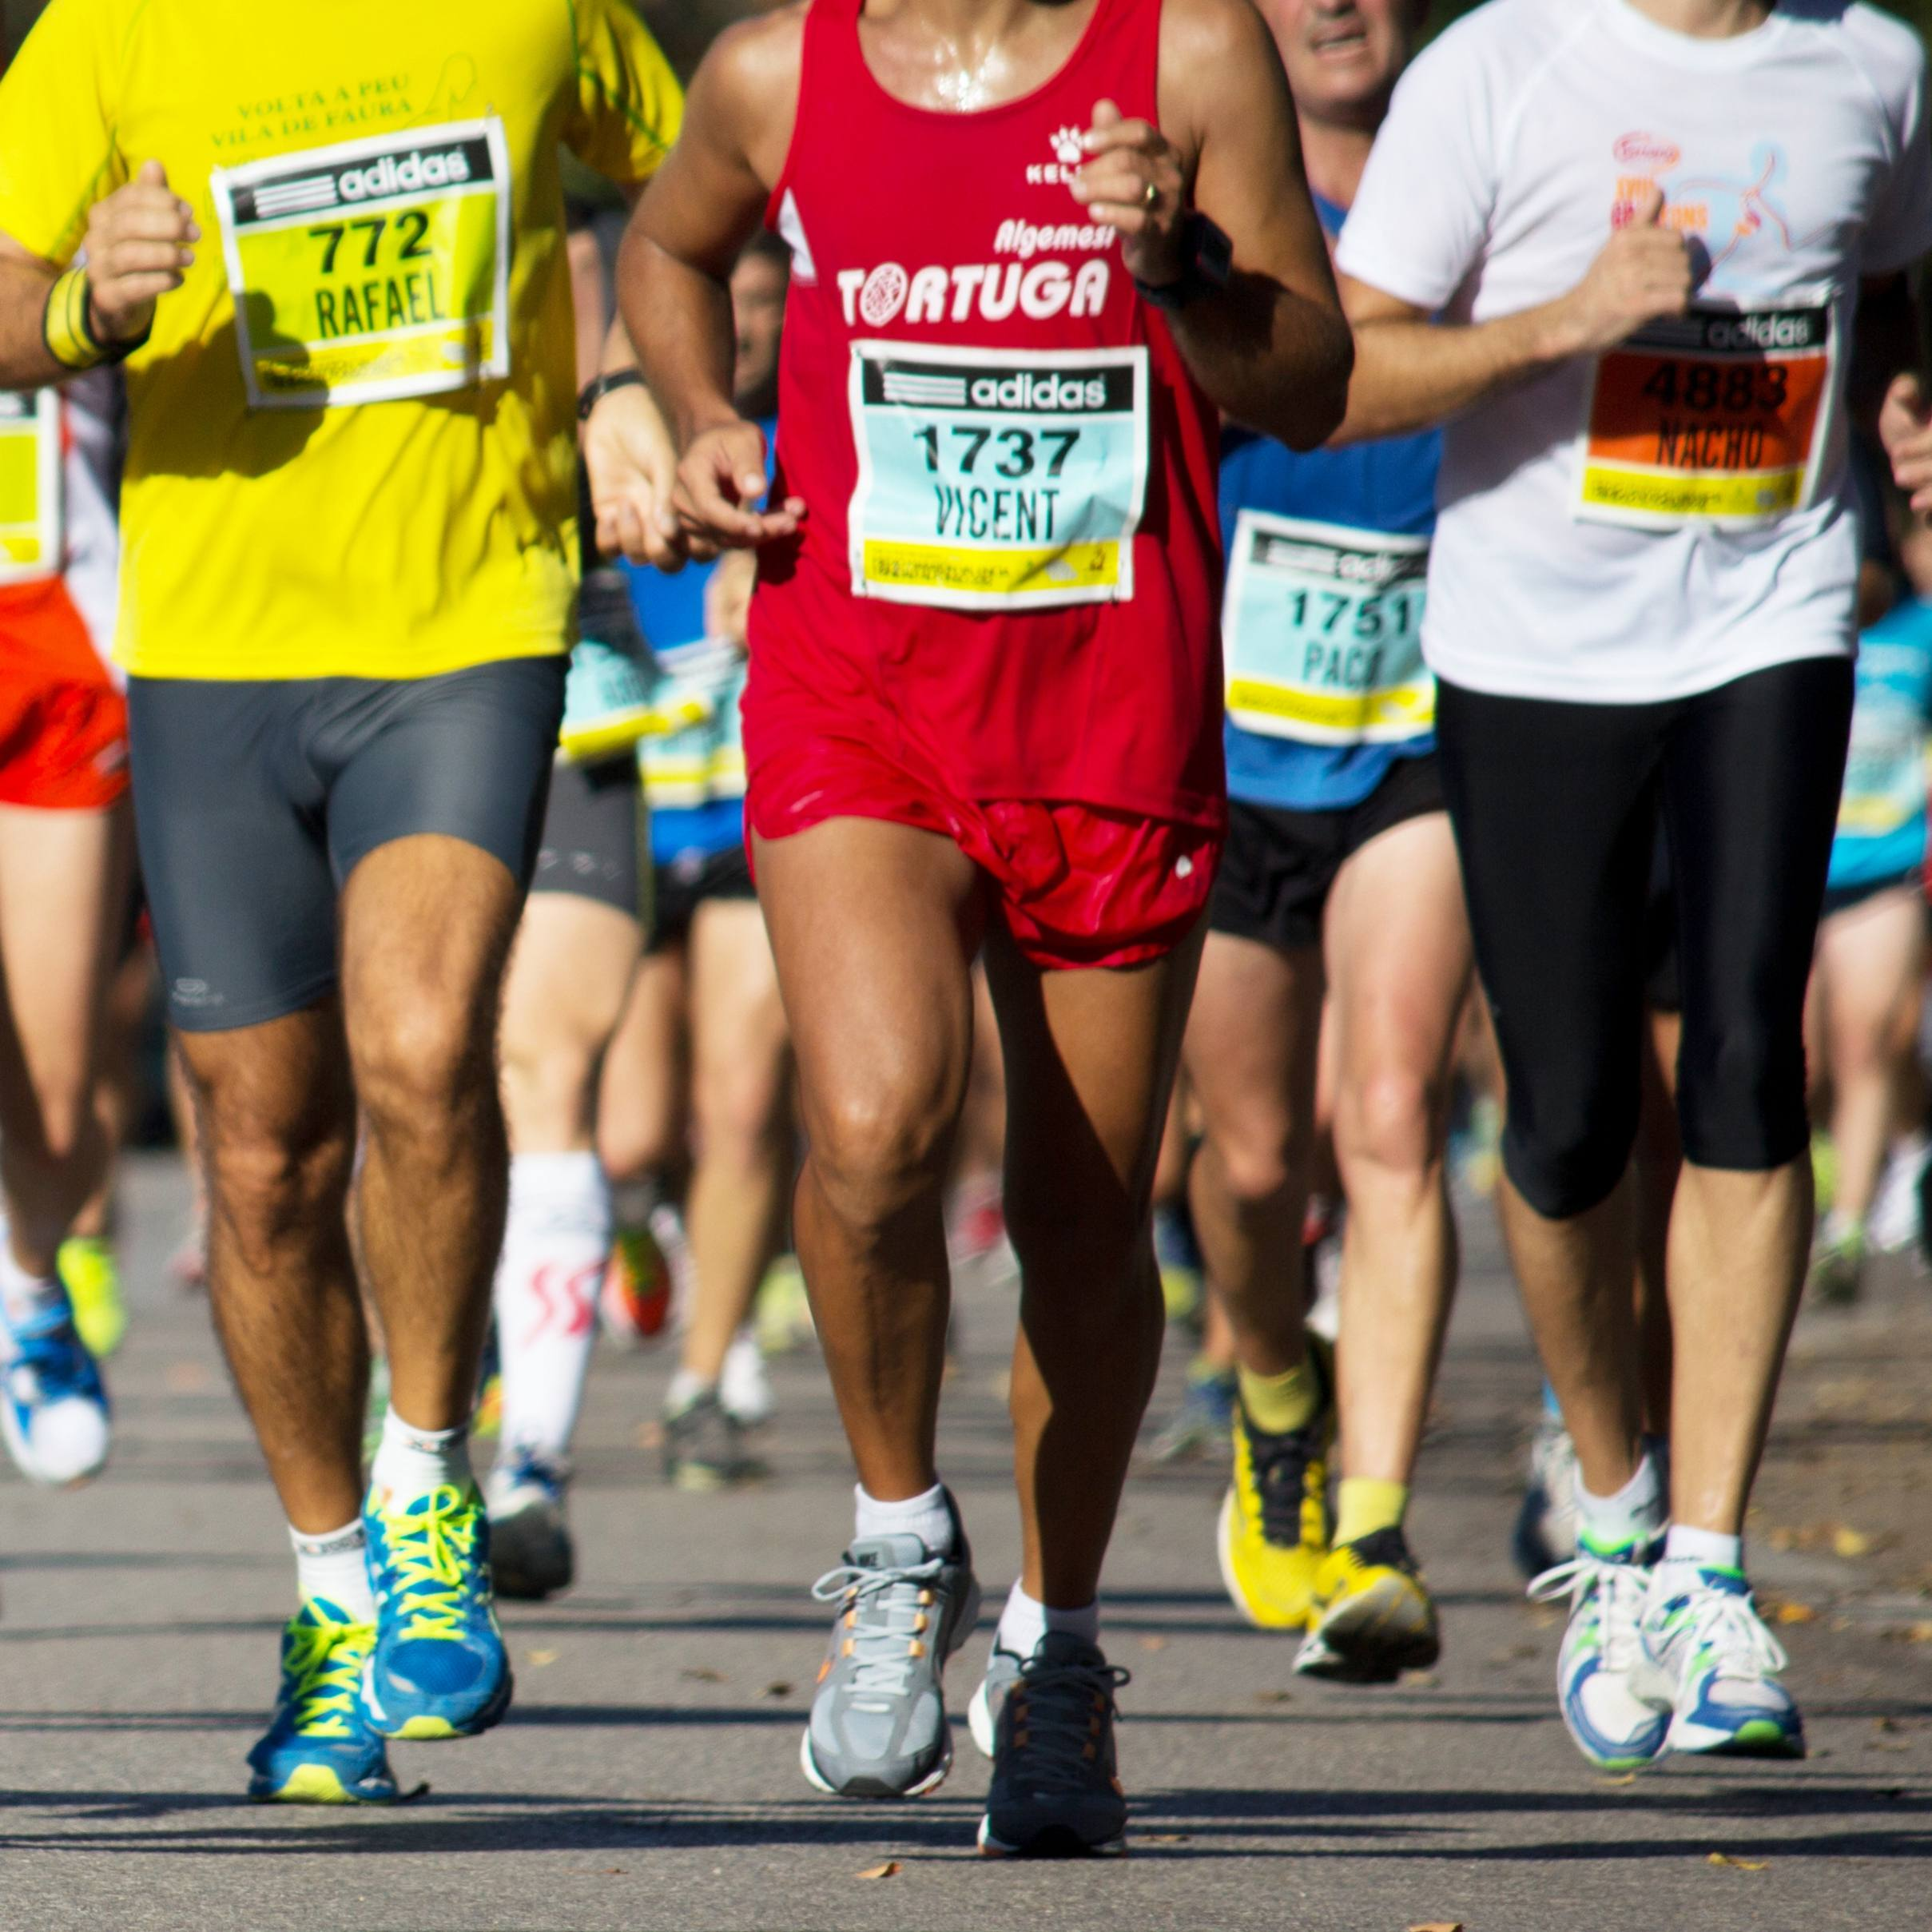 legs and feet of a large group of runners in a marathon race on pavement or a road